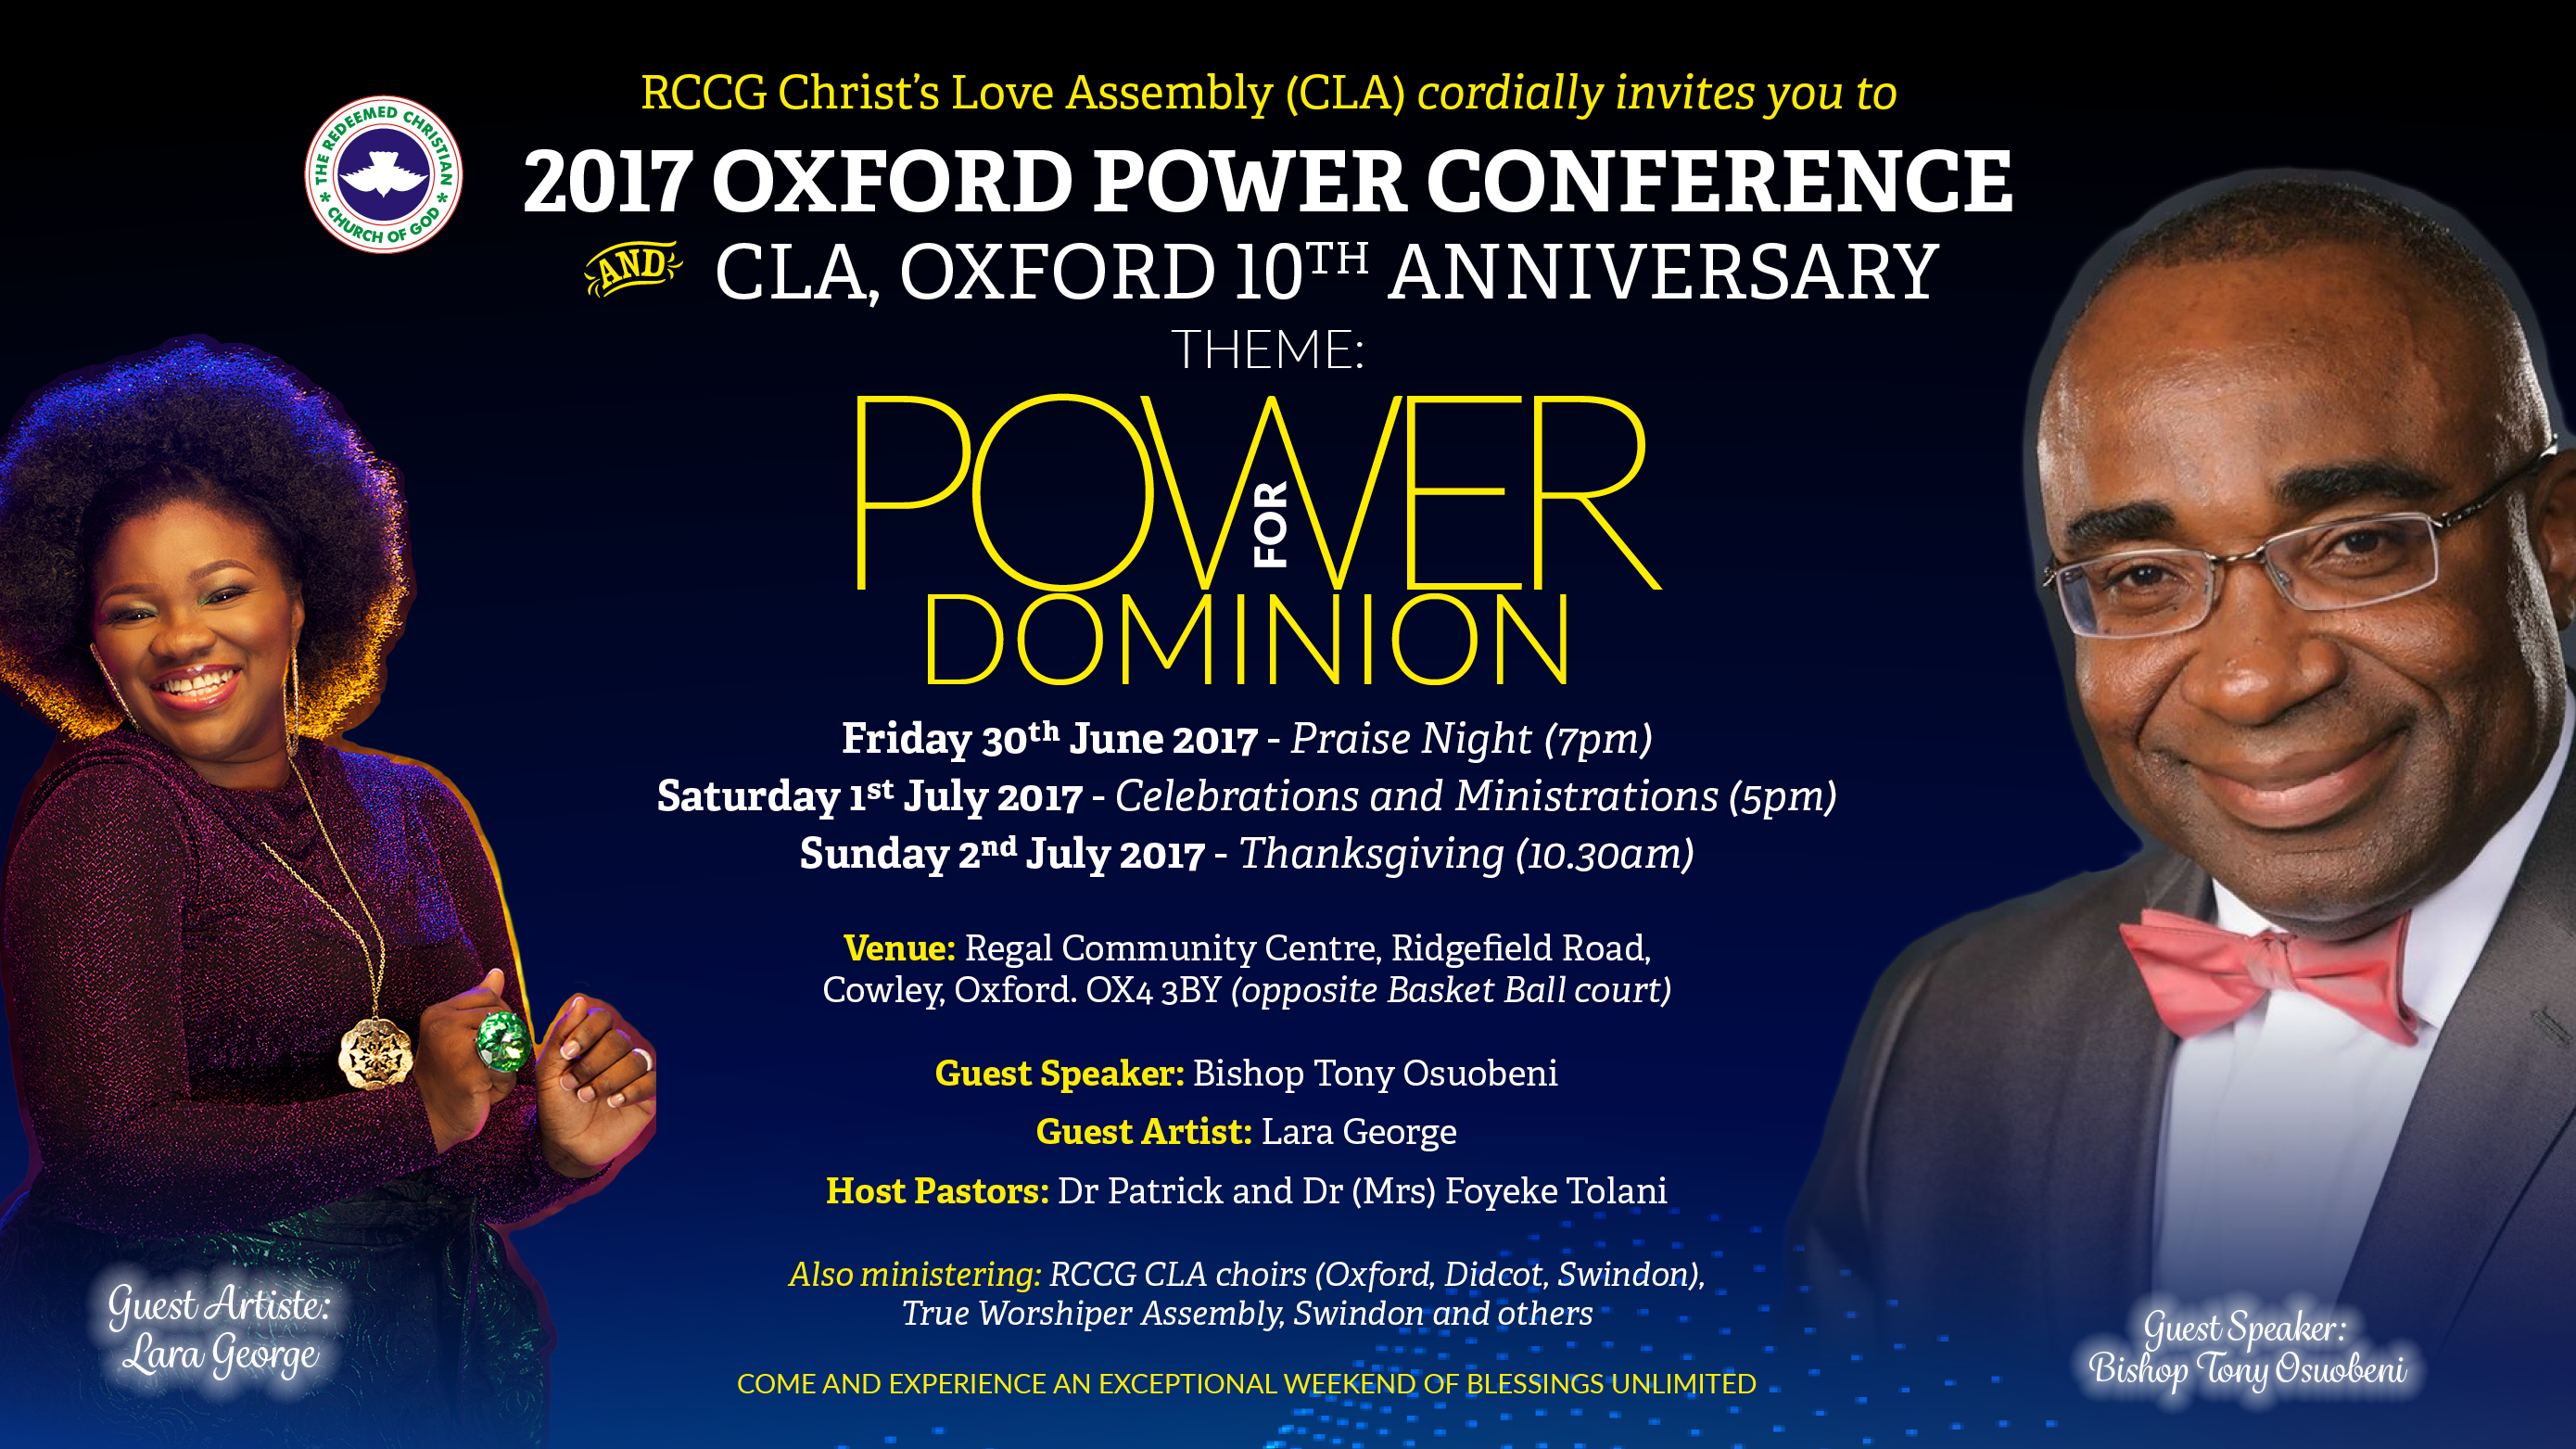 Oxford Power Conference 2017